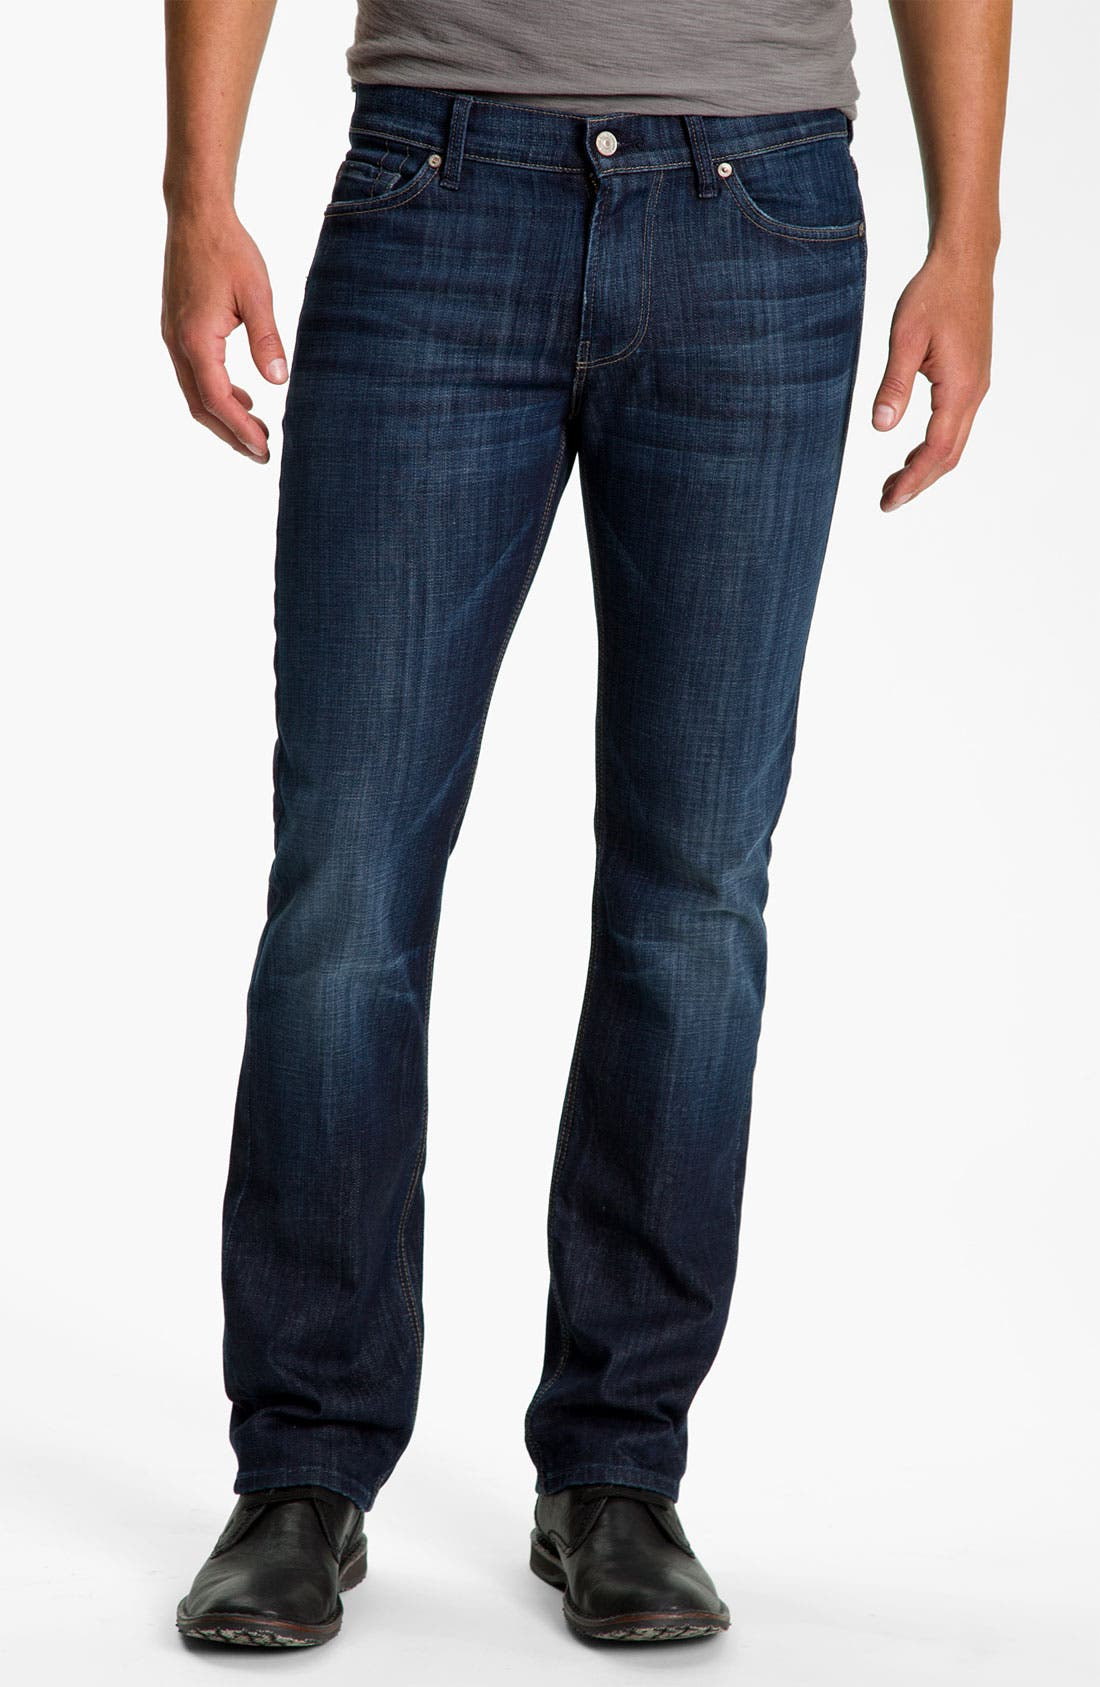 Main Image - 7 For All Mankind® Slimmy Slim Fit Jeans (Los Angeles Dark)